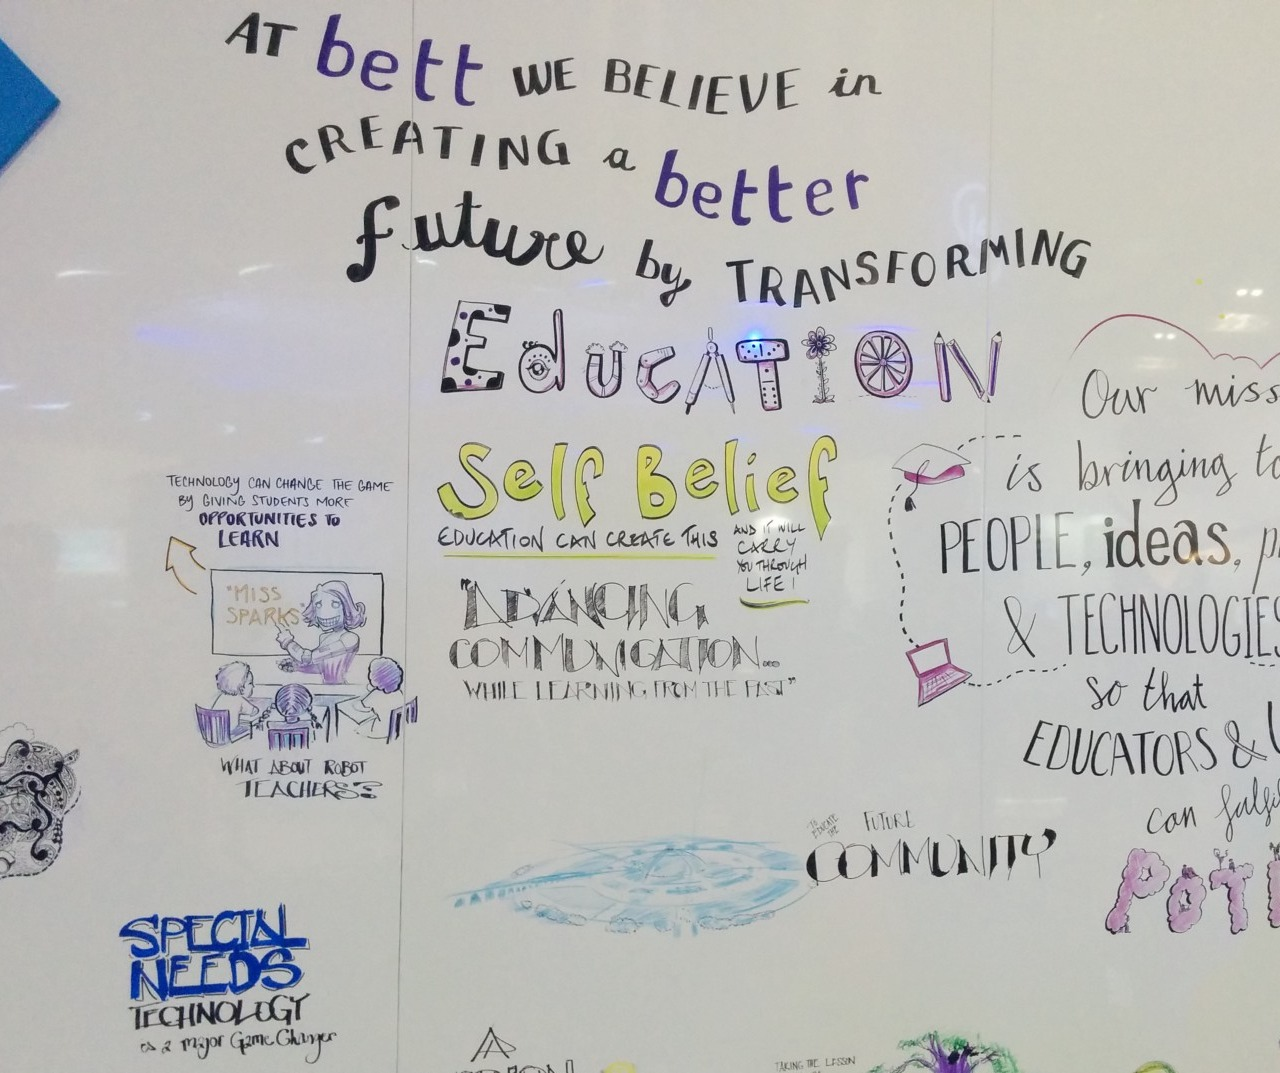 Brainstorming beliefs and ideas at Bett Conference for education